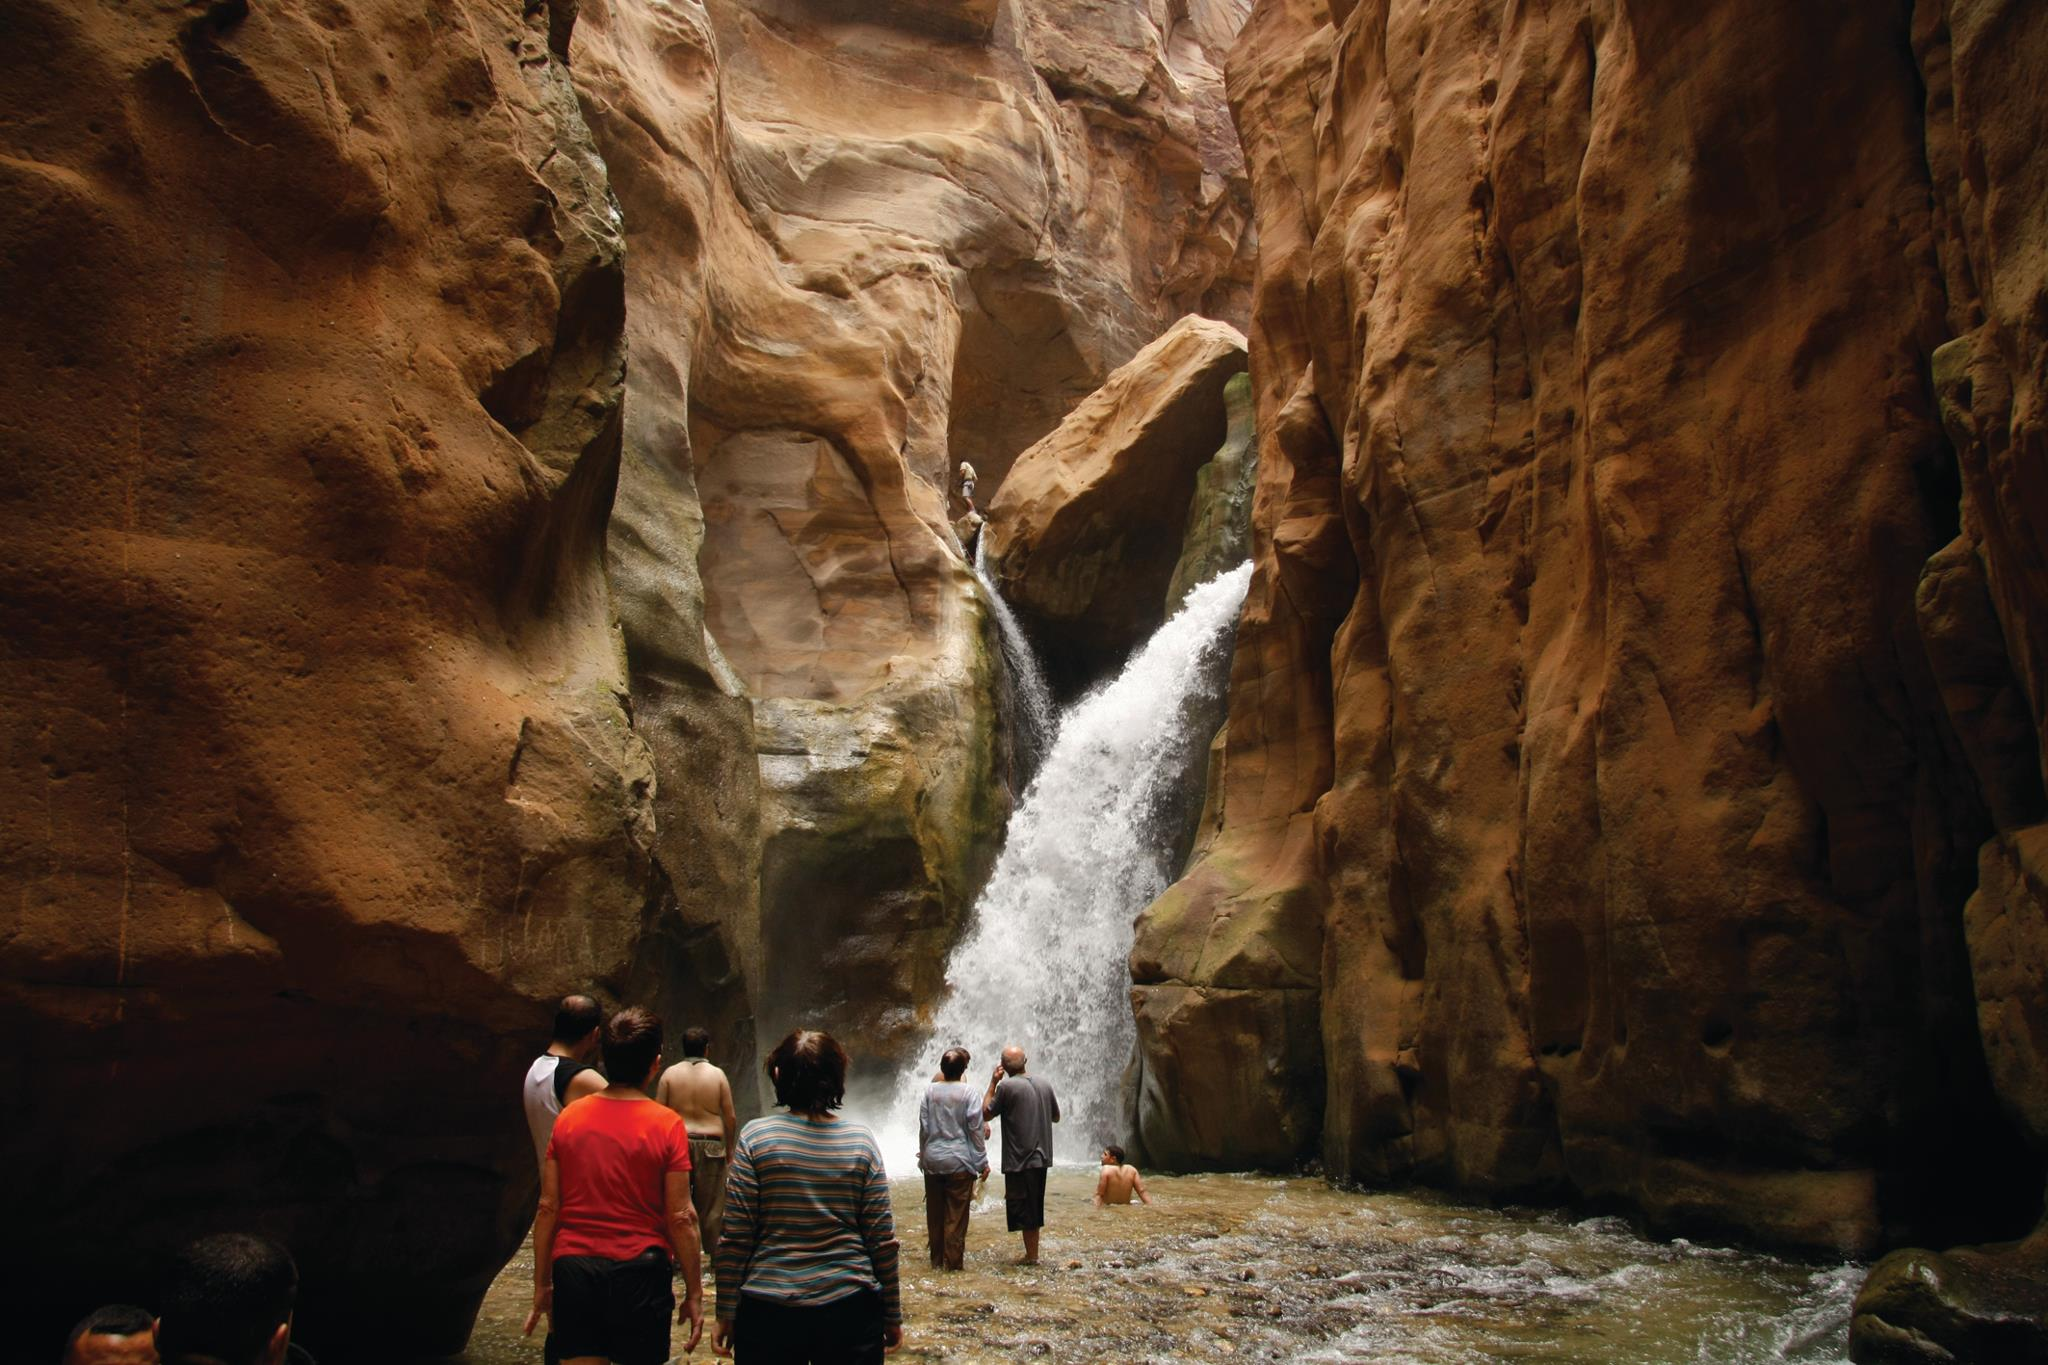 tourists looking at a waterfall in the desert